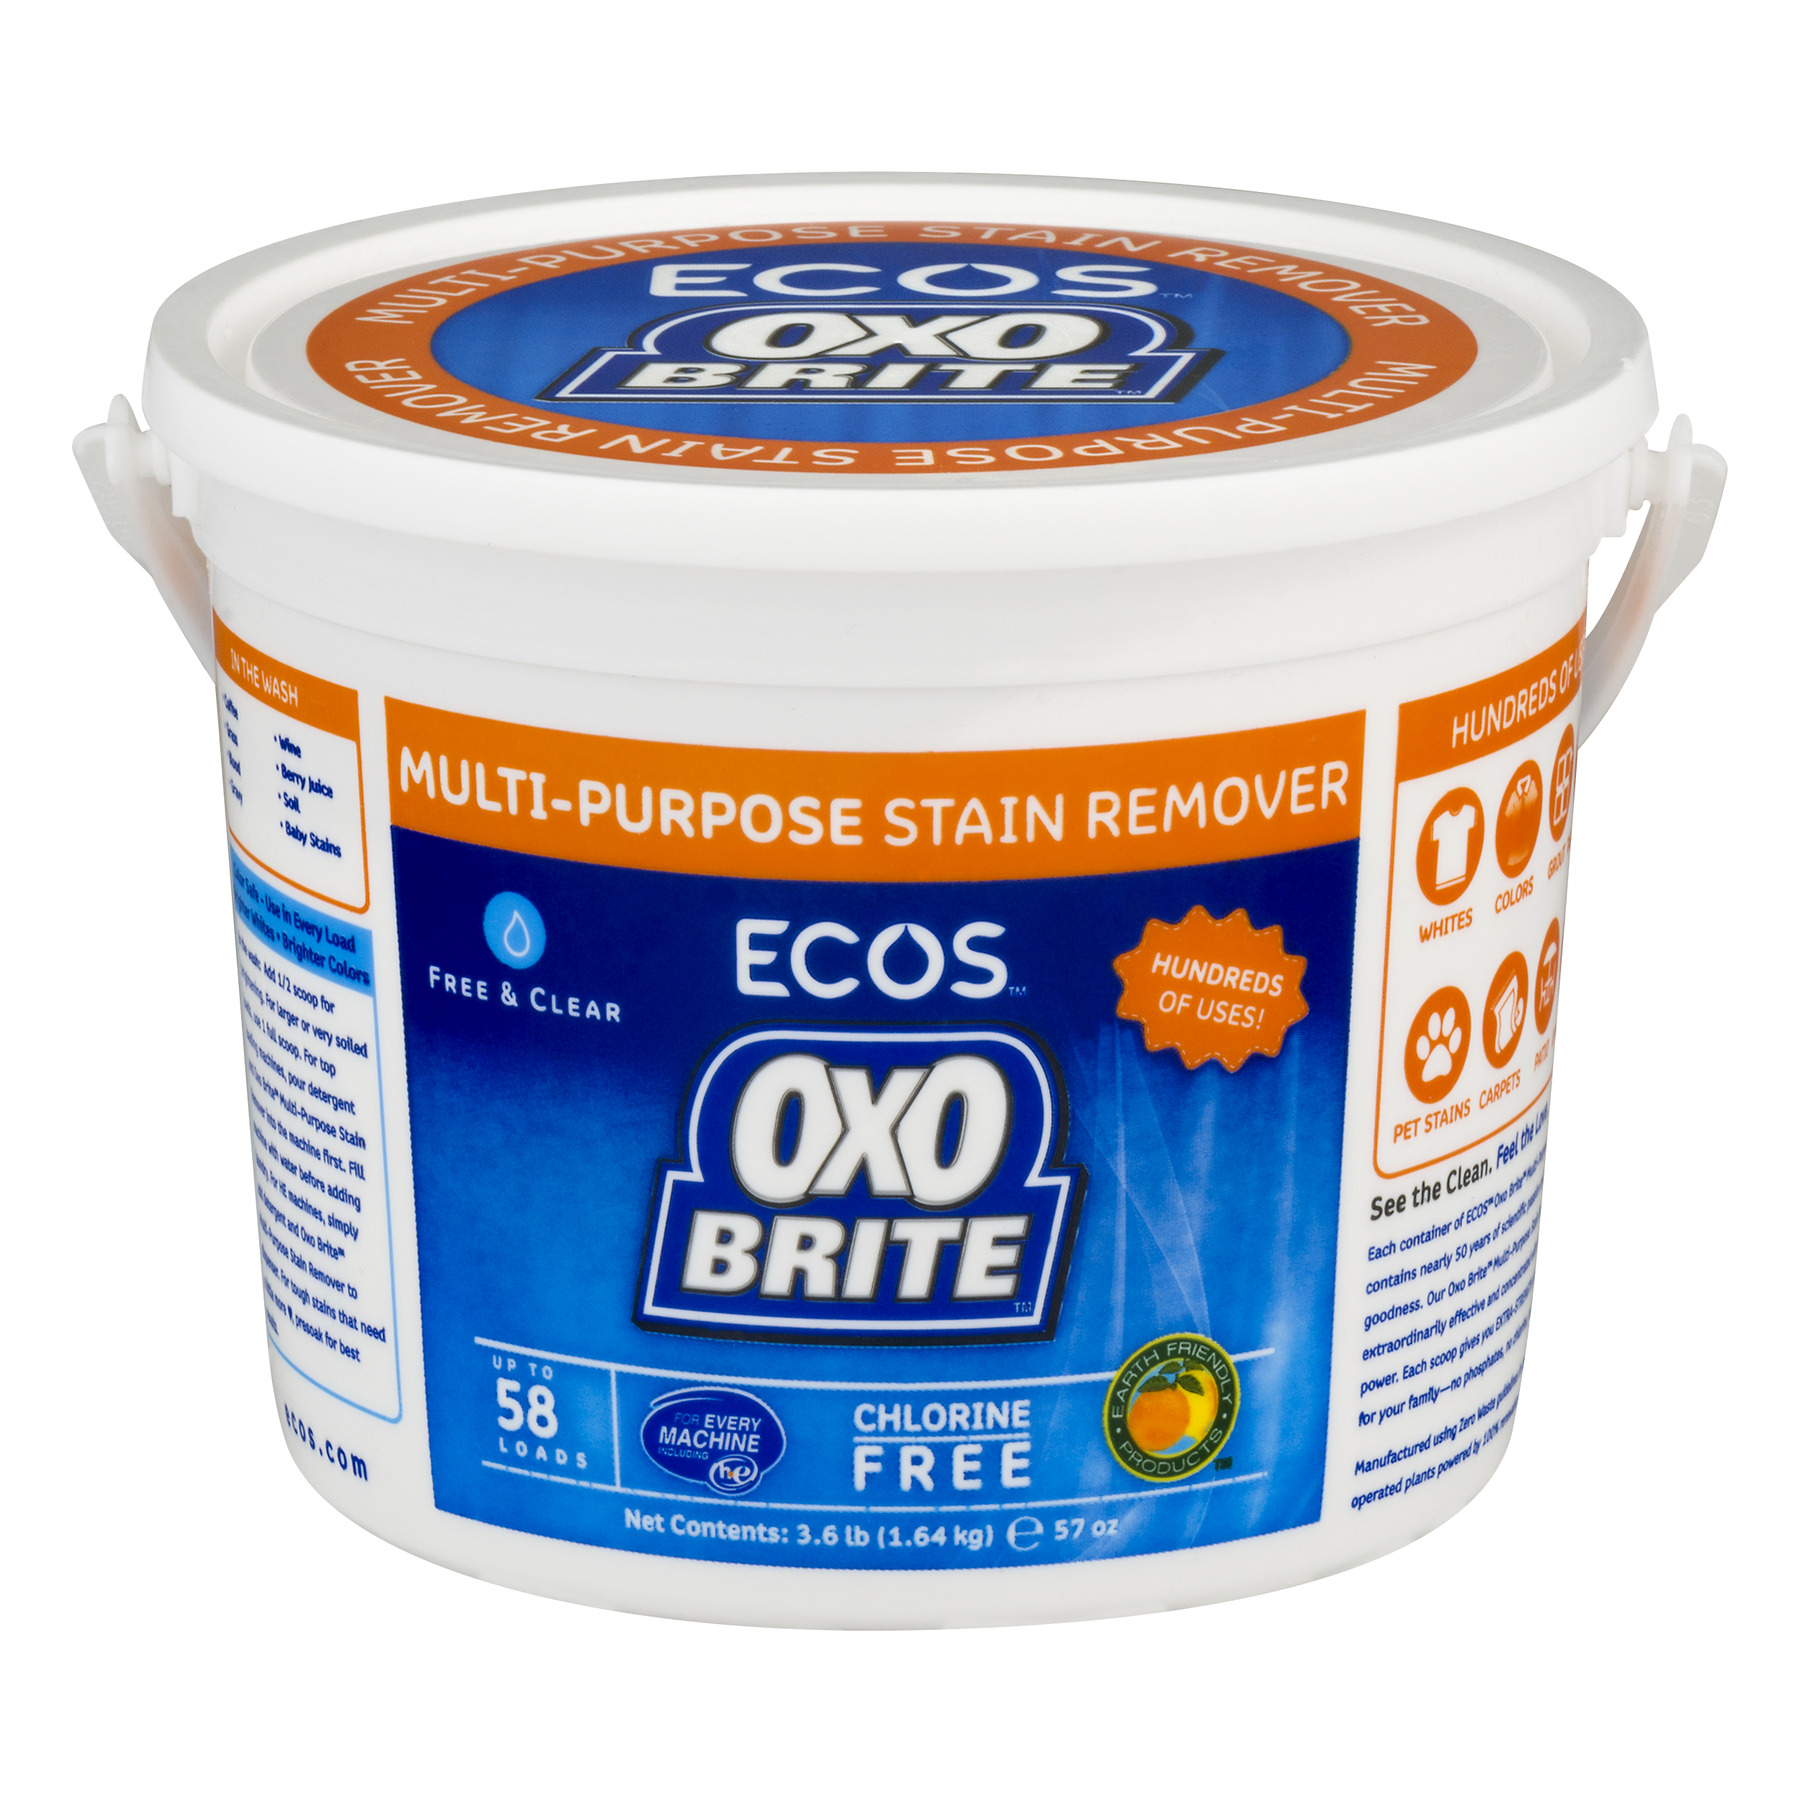 Ecos OXO Brite Multi-Purpose Stain Remover Free & Clear, 57.0 OZ